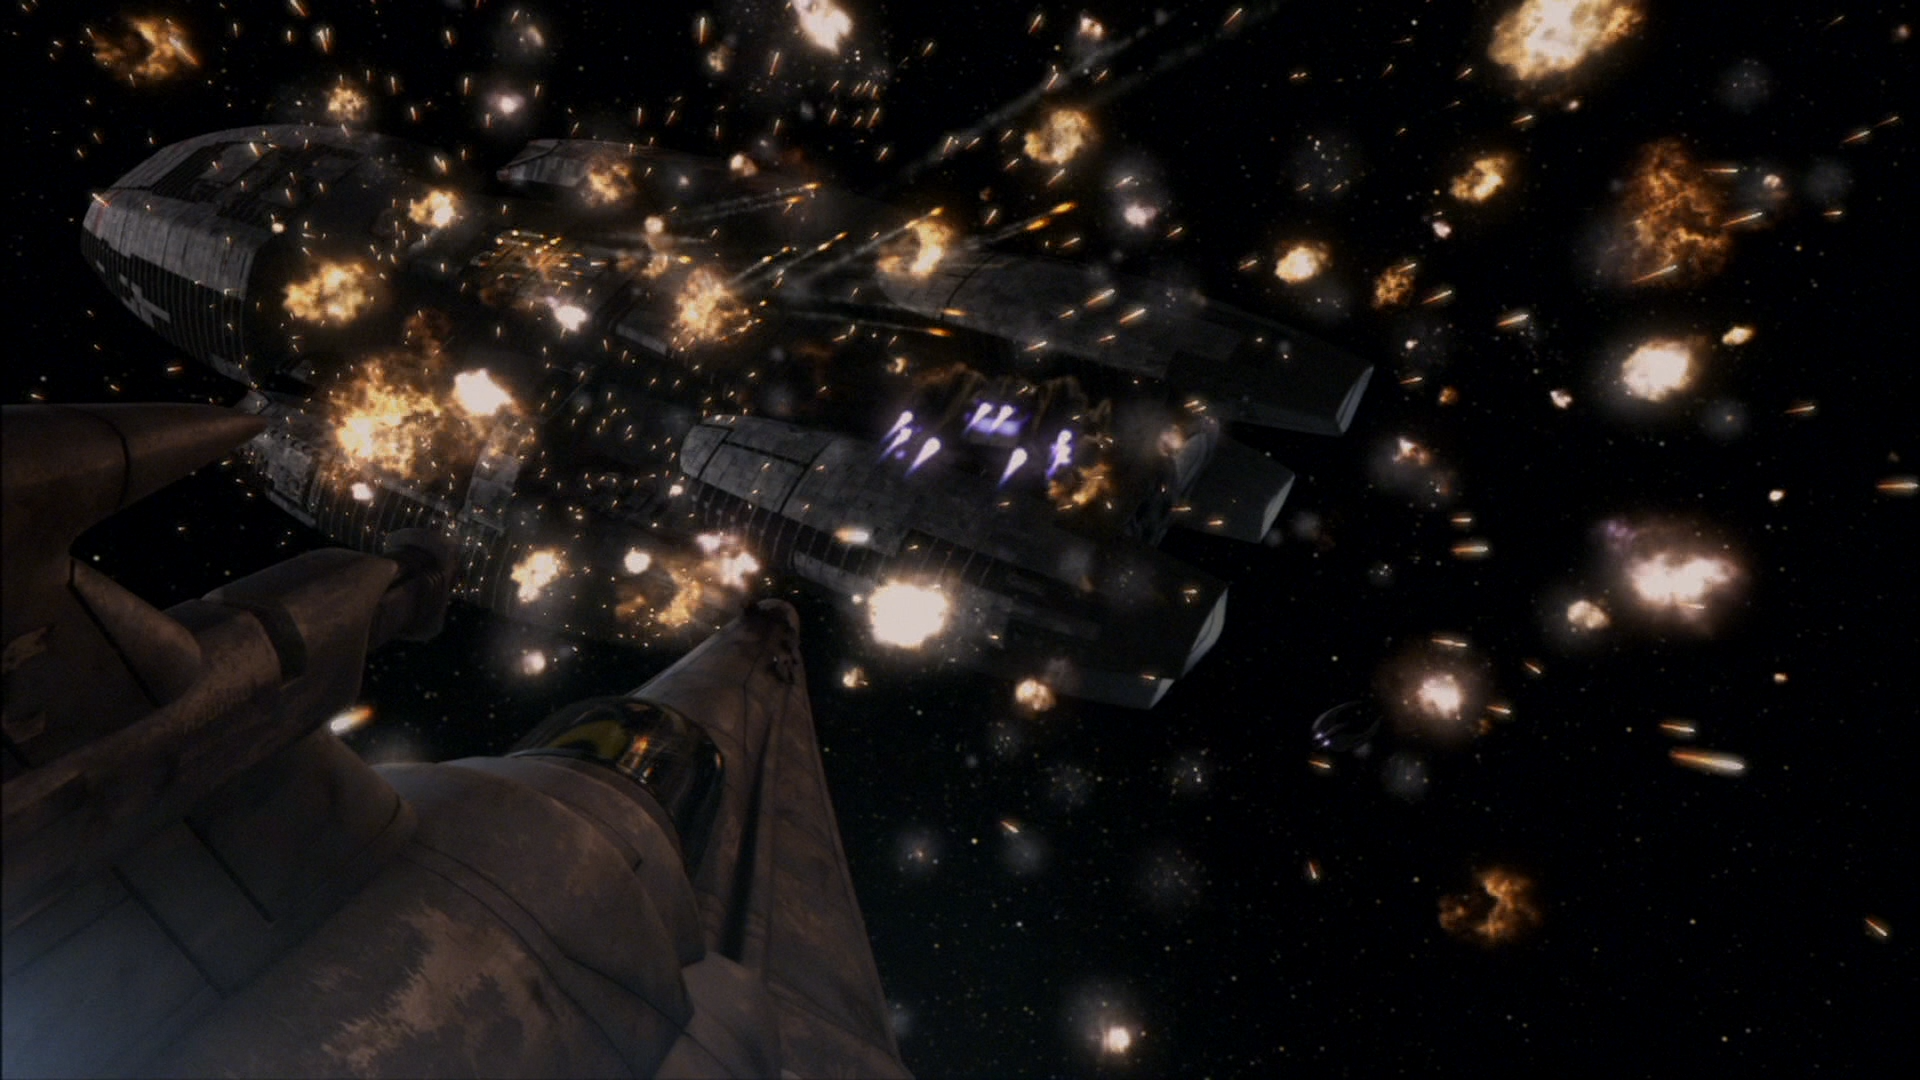 Battlestar Galactica Space Battle